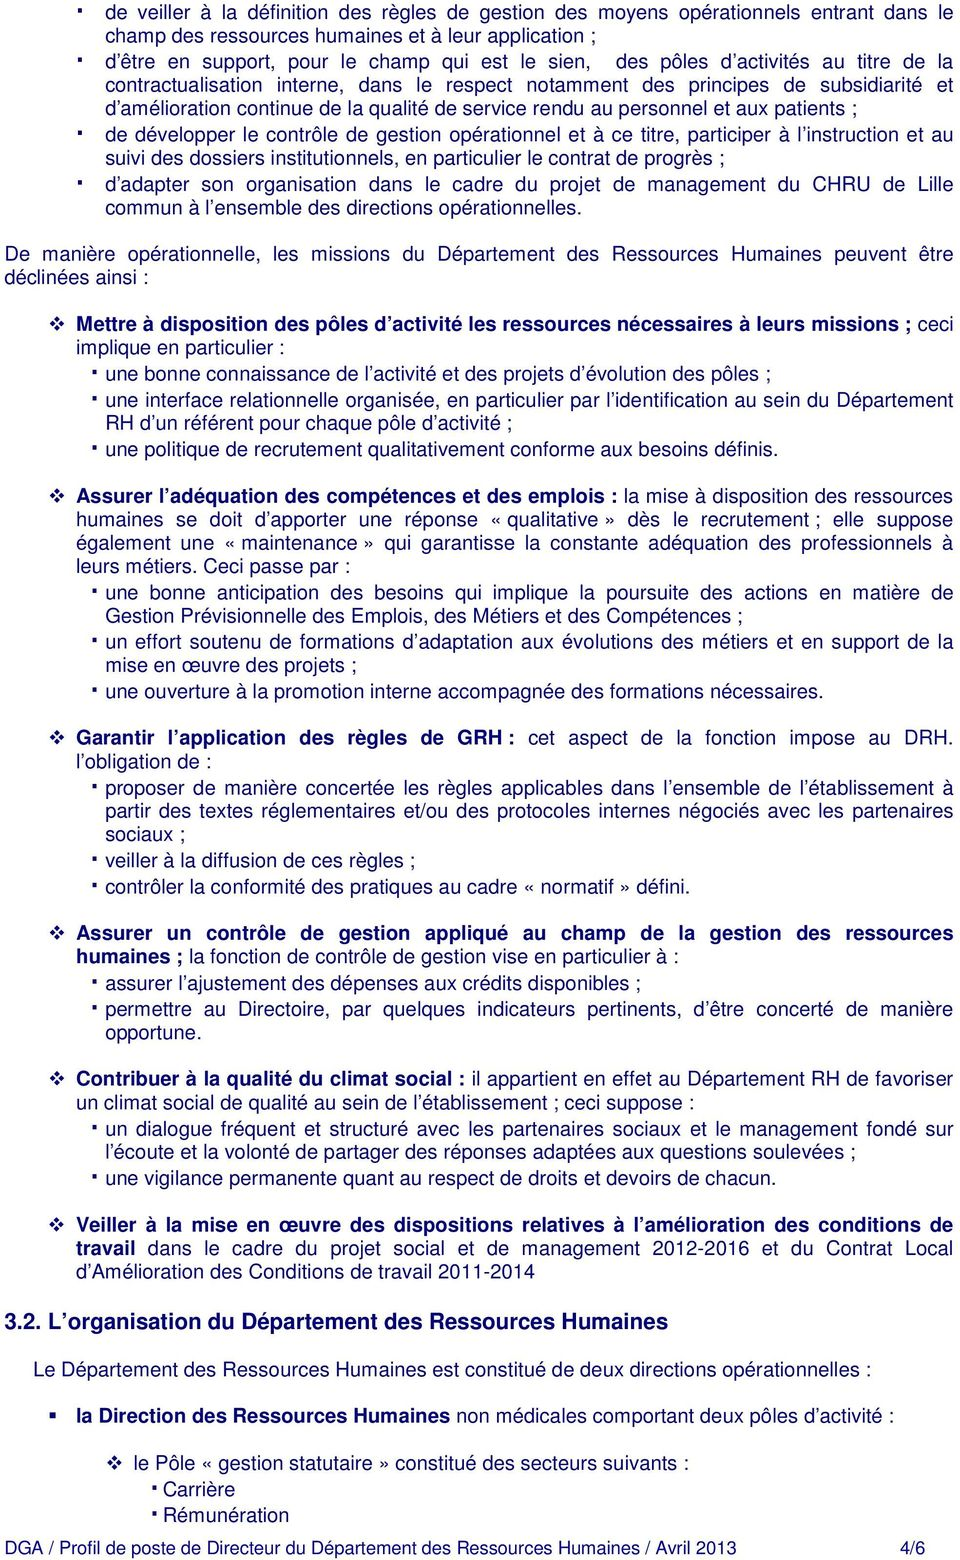 patients ; de développer le contrôle de gestion opérationnel et à ce titre, participer à l instruction et au suivi des dossiers institutionnels, en particulier le contrat de progrès ; d adapter son